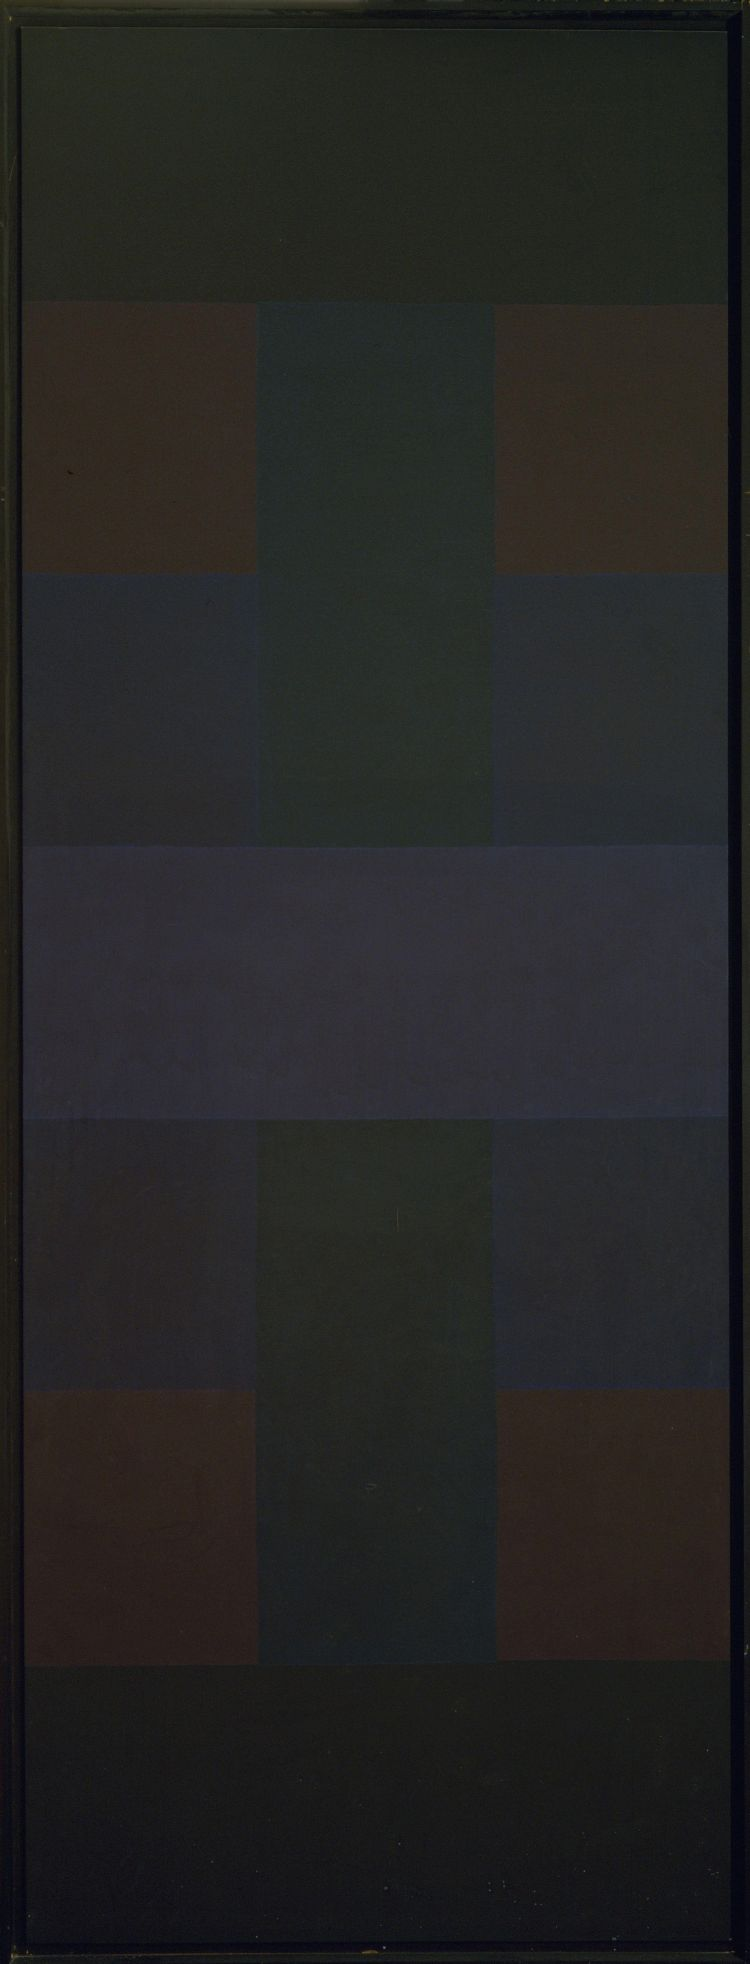 Abstract Painting by Ad Reinhardt : Sanjeev.NETwork